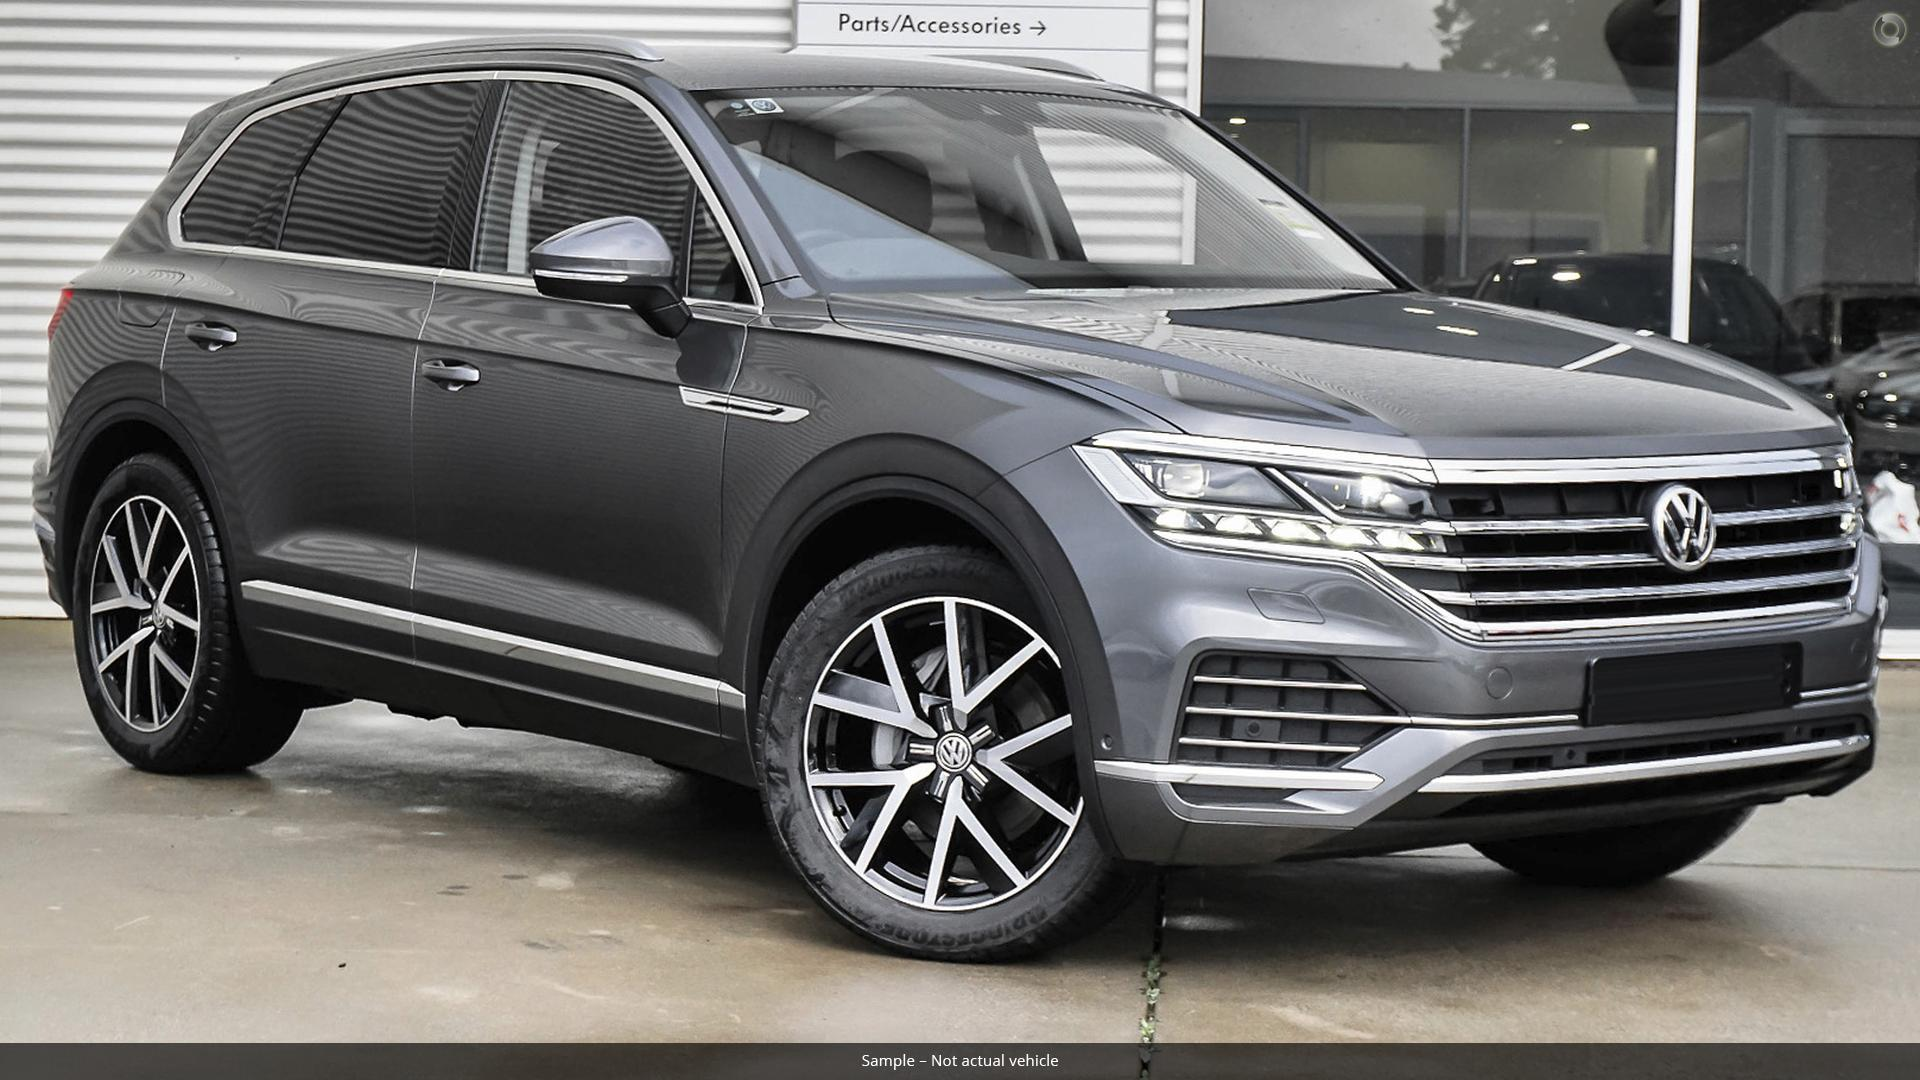 2019 Volkswagen Touareg 190TDI Launch Edition CR